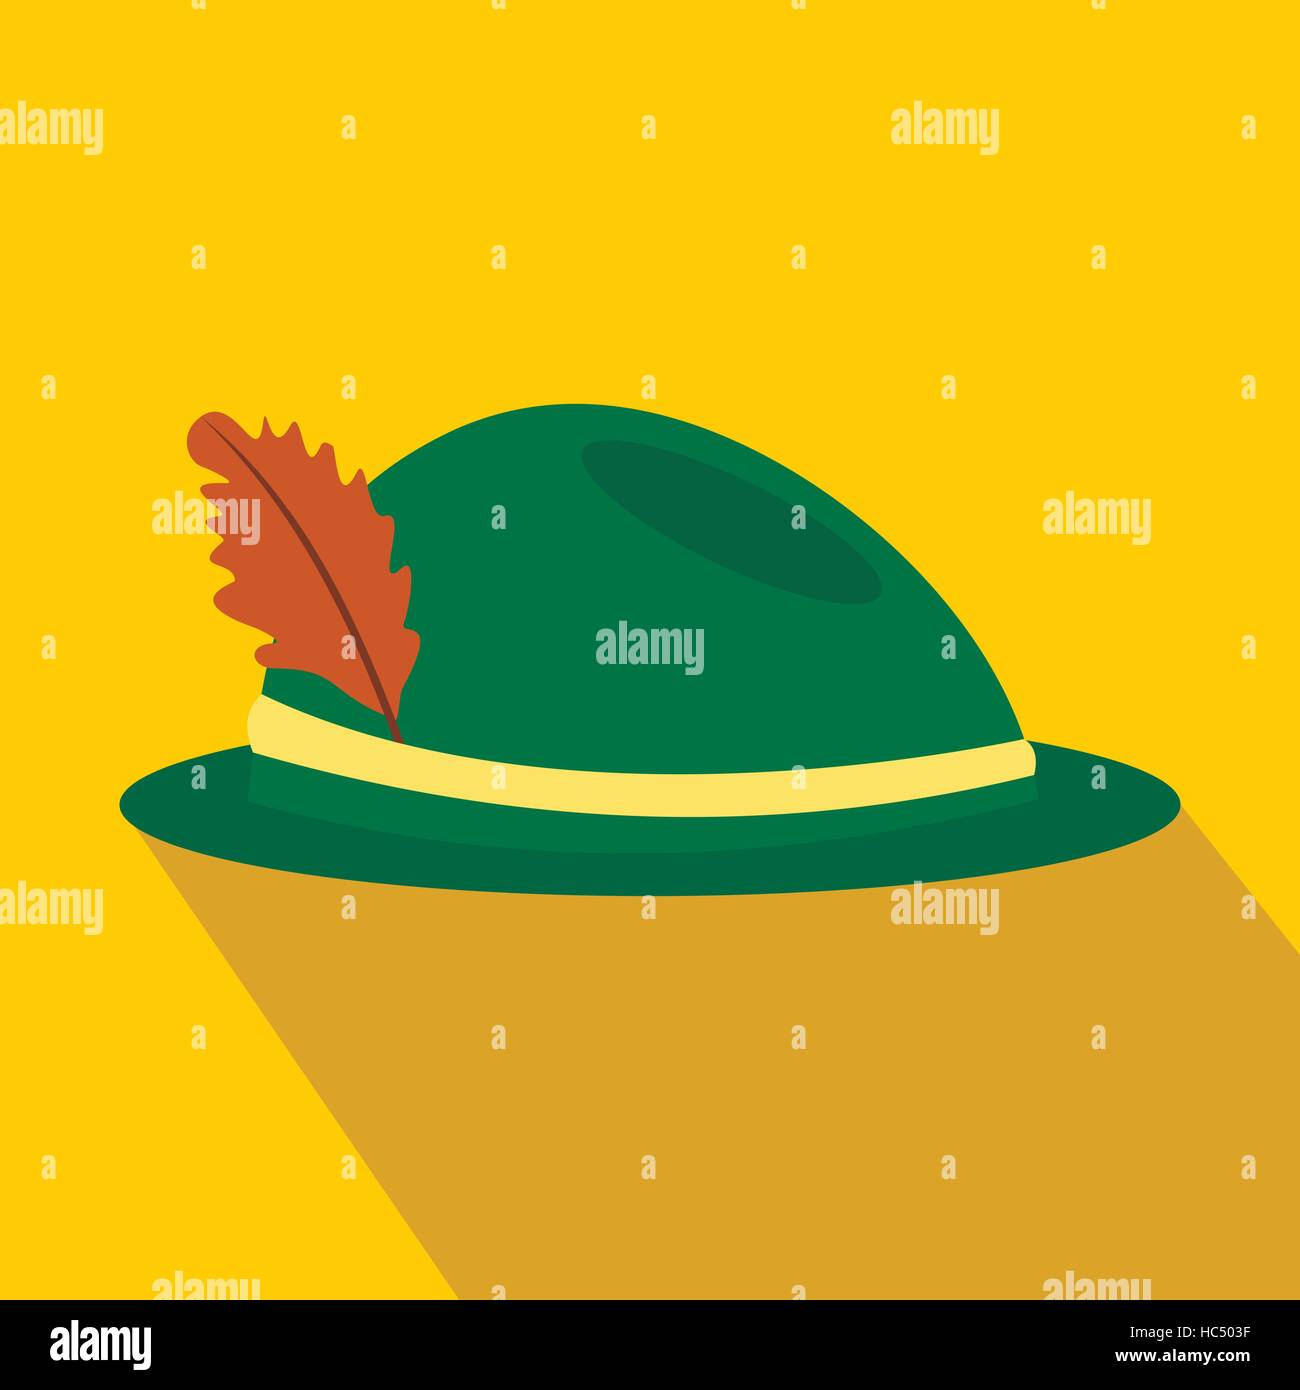 Green hat with a feather flat icon - Stock Image